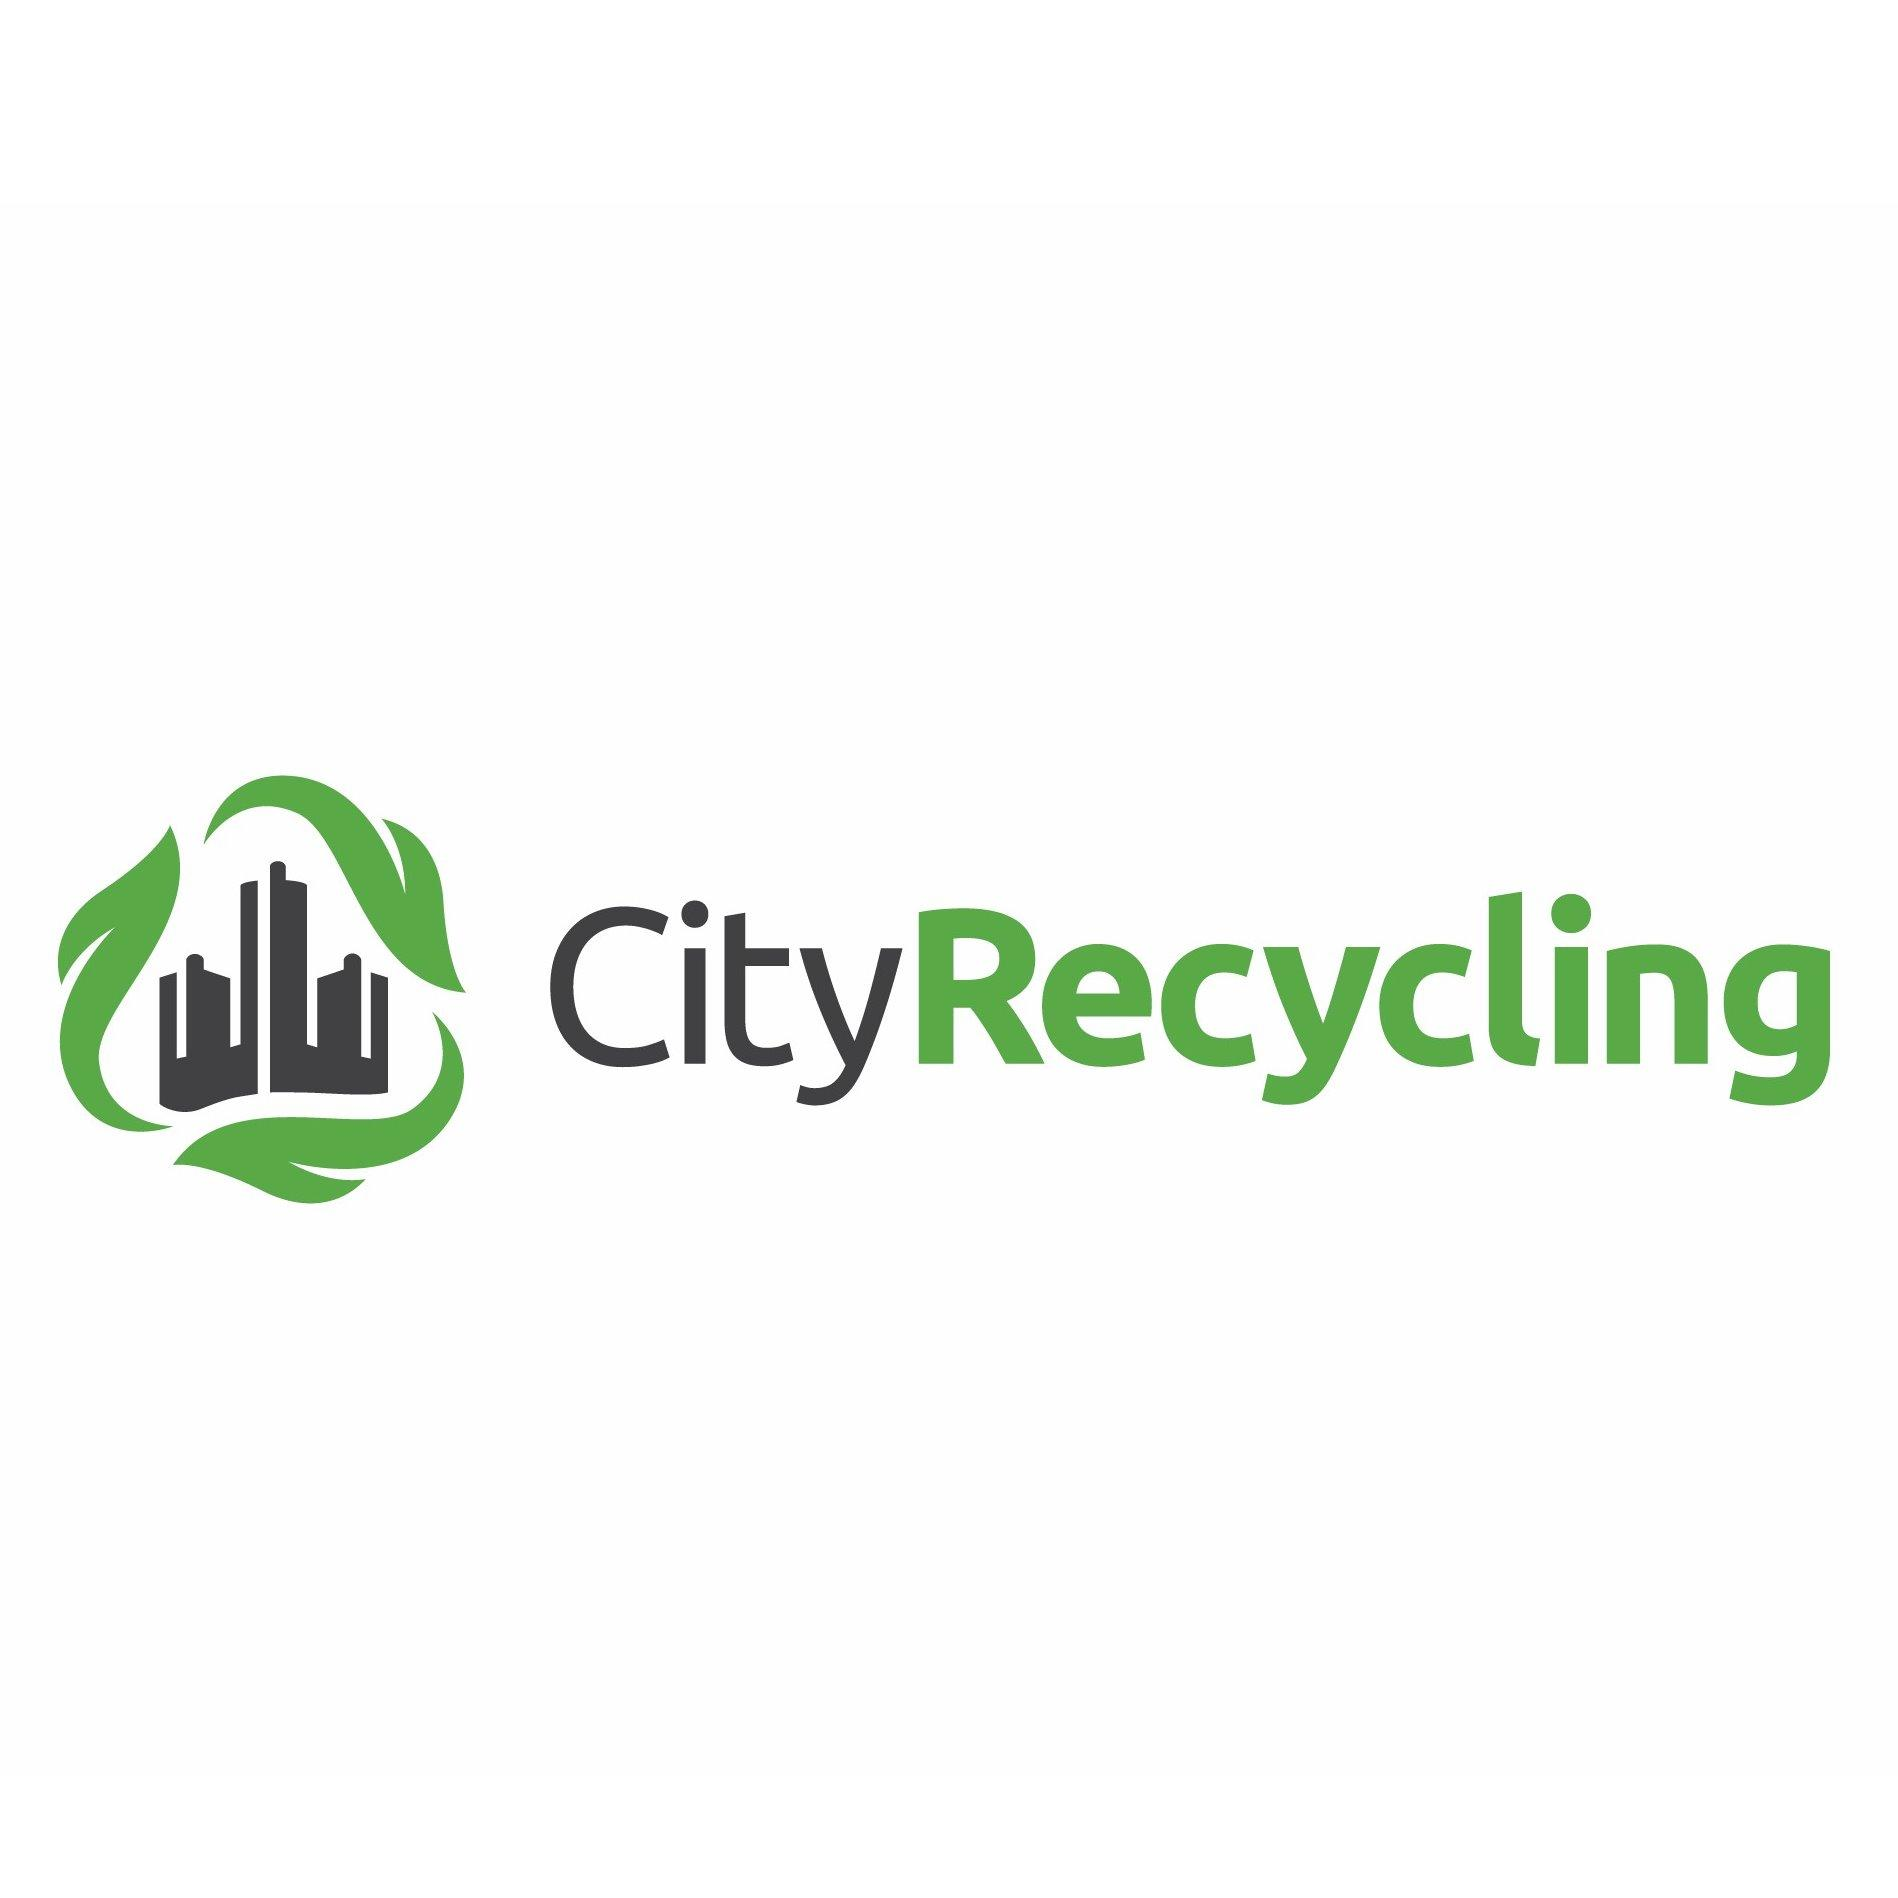 City Recycling Inc image 3